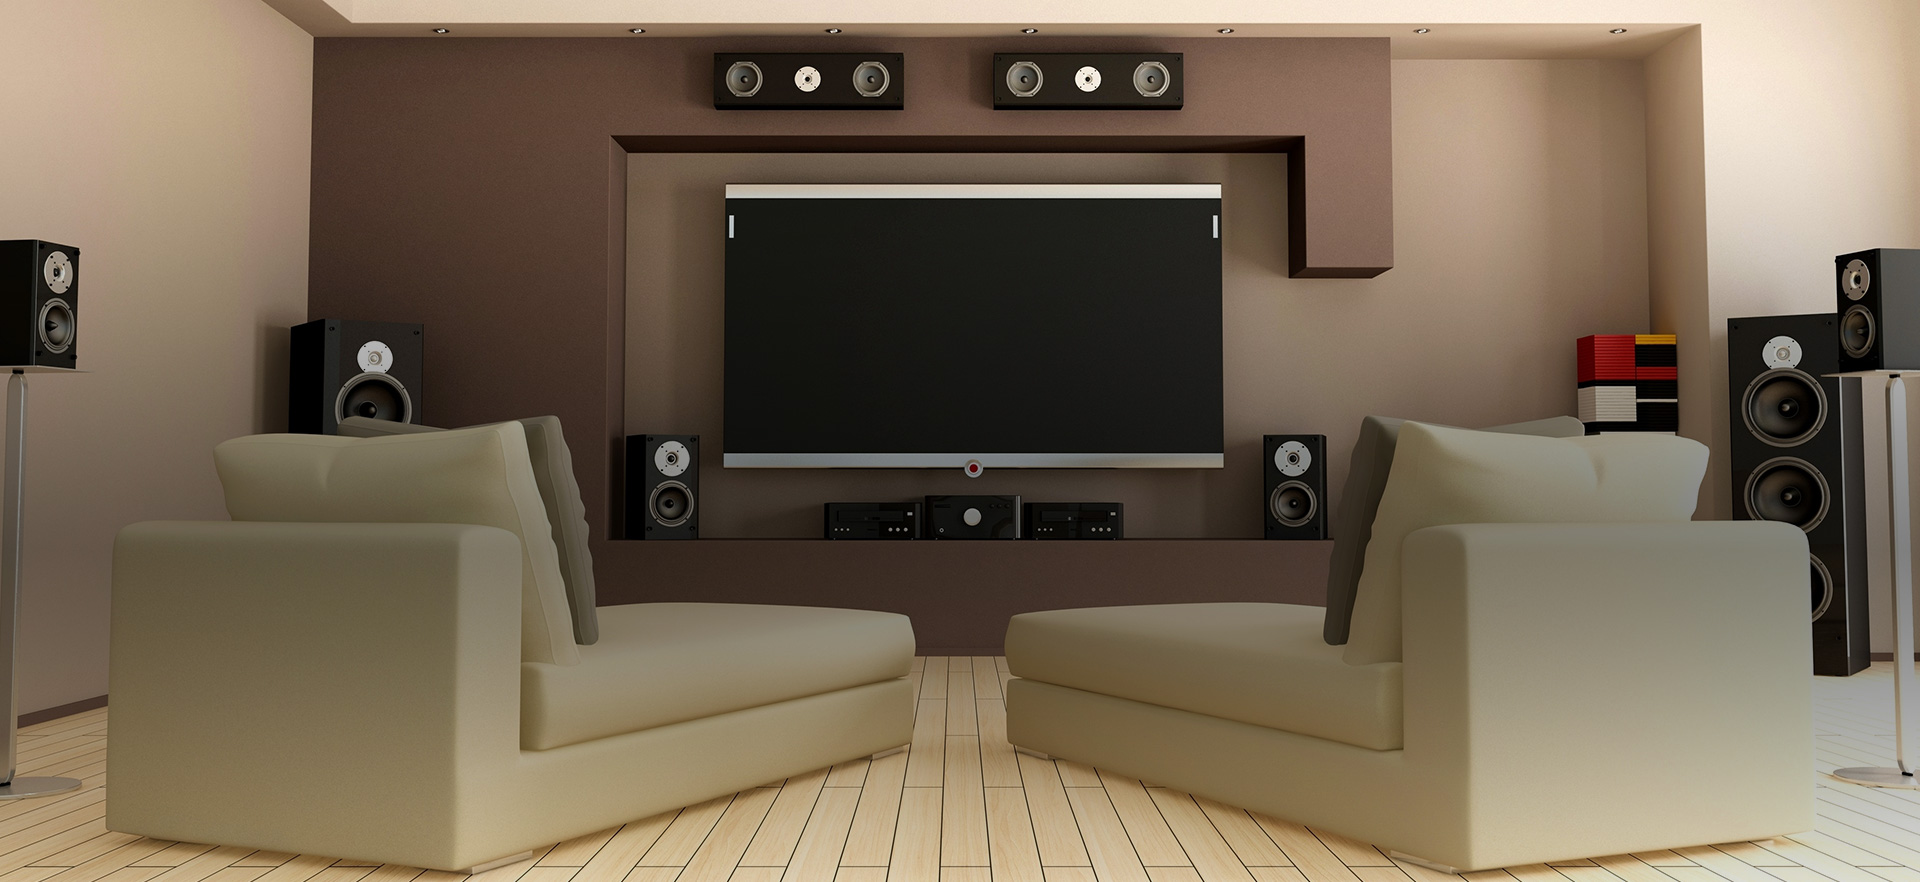 Best surround sound options 2020